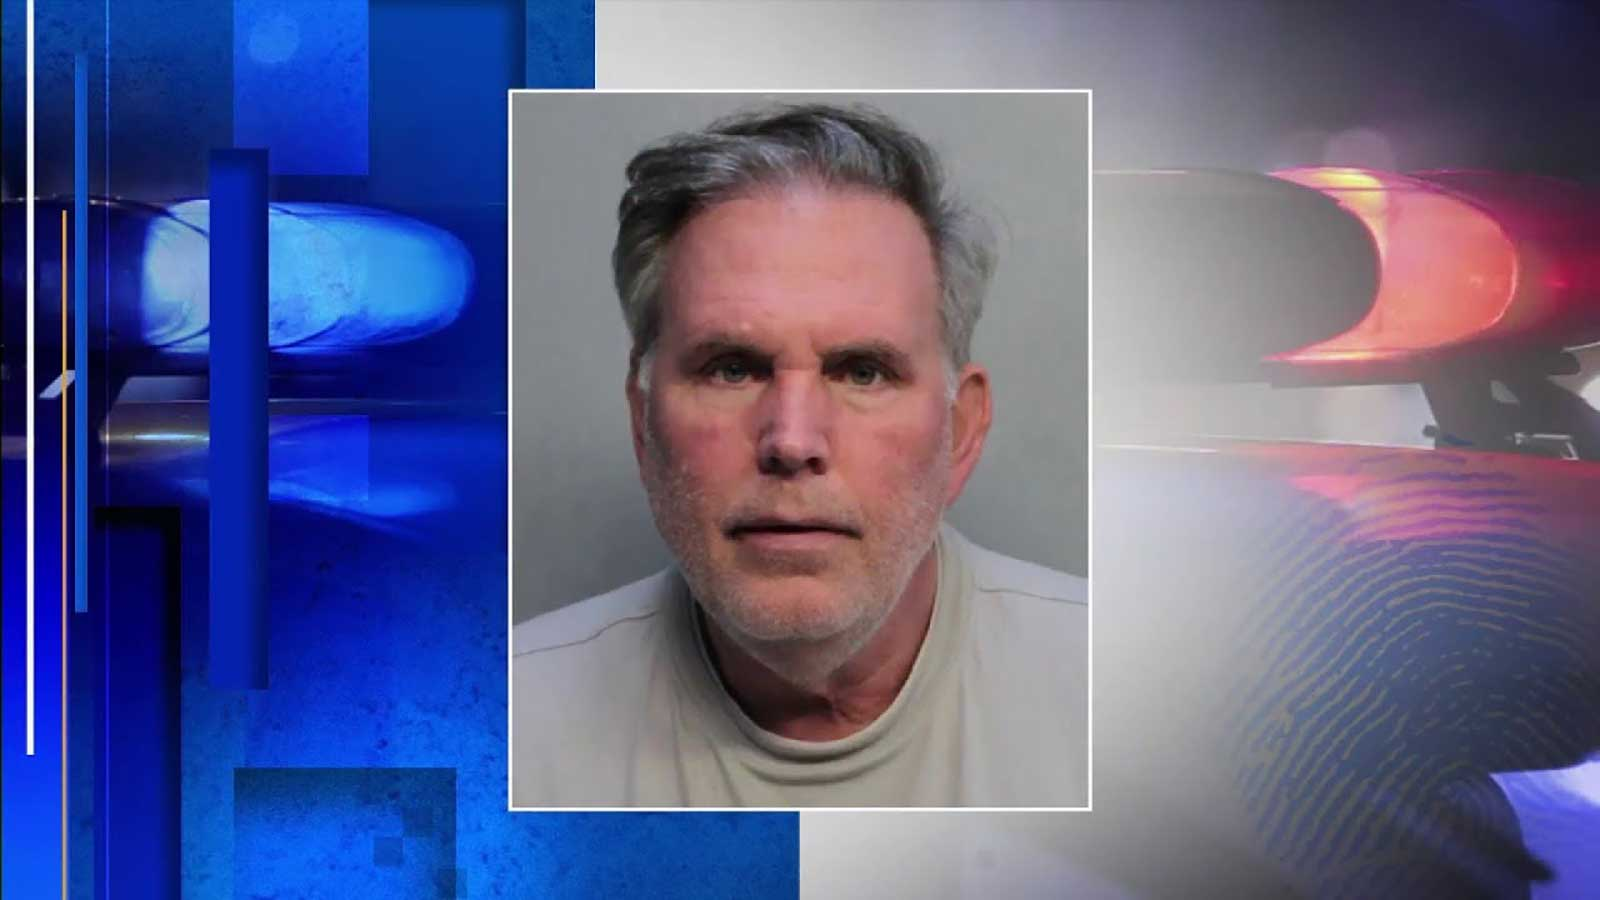 Florida Man is often seen as a quirky guy who got himself in a bit of trouble, but unfortunately, many Florida Man headlines show you the true monster.